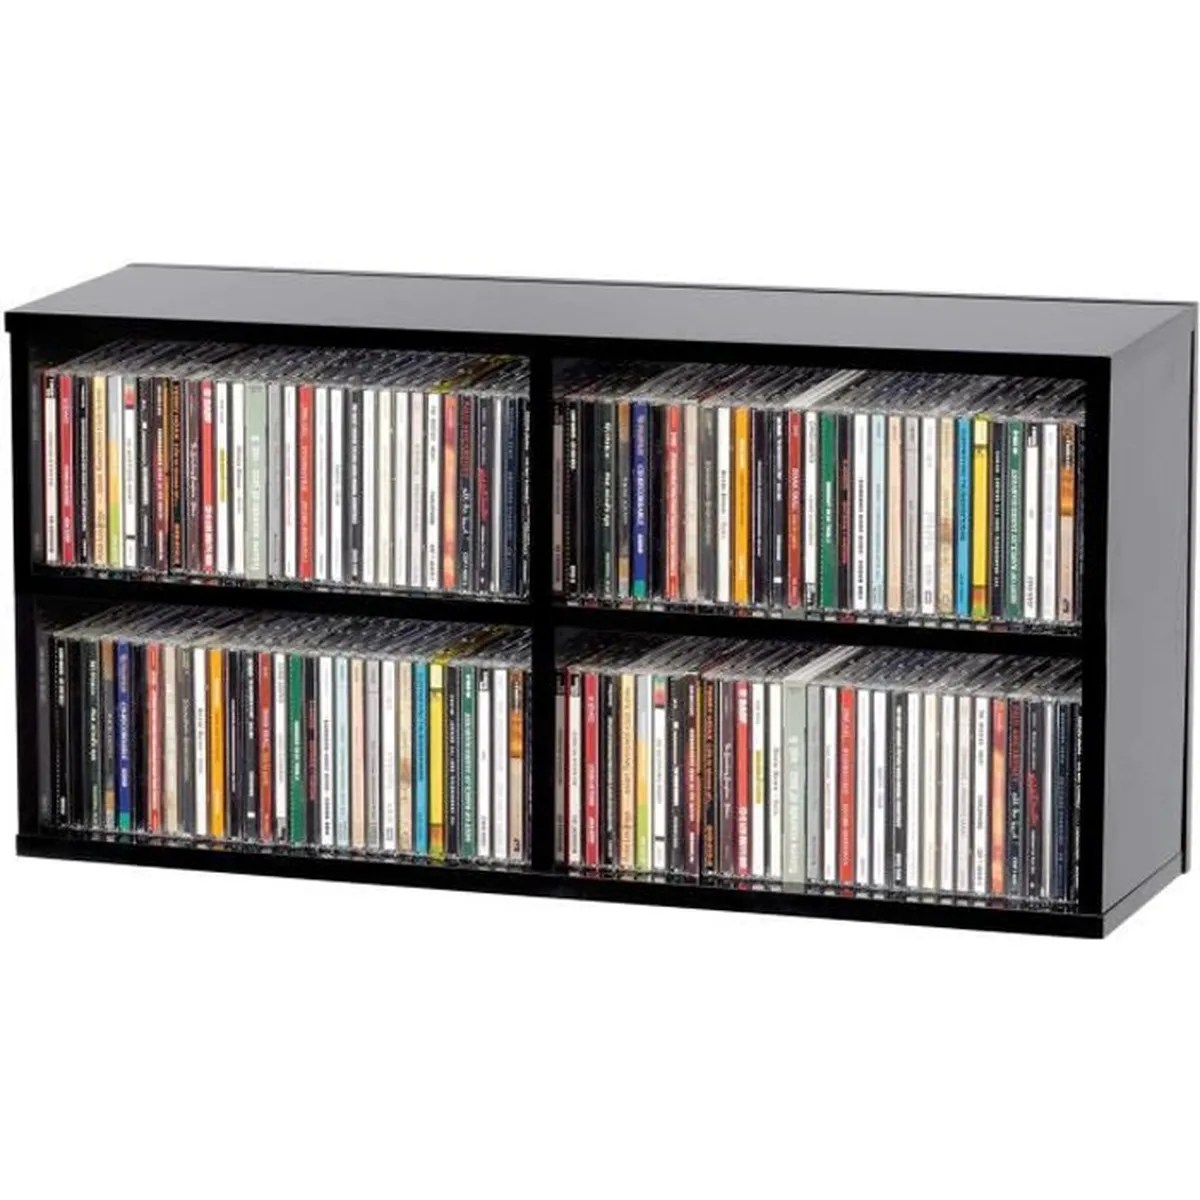 Mobilier Home Studio Glorious Cd Box 180 Casier De Rangement 180 Cd Finition Noir